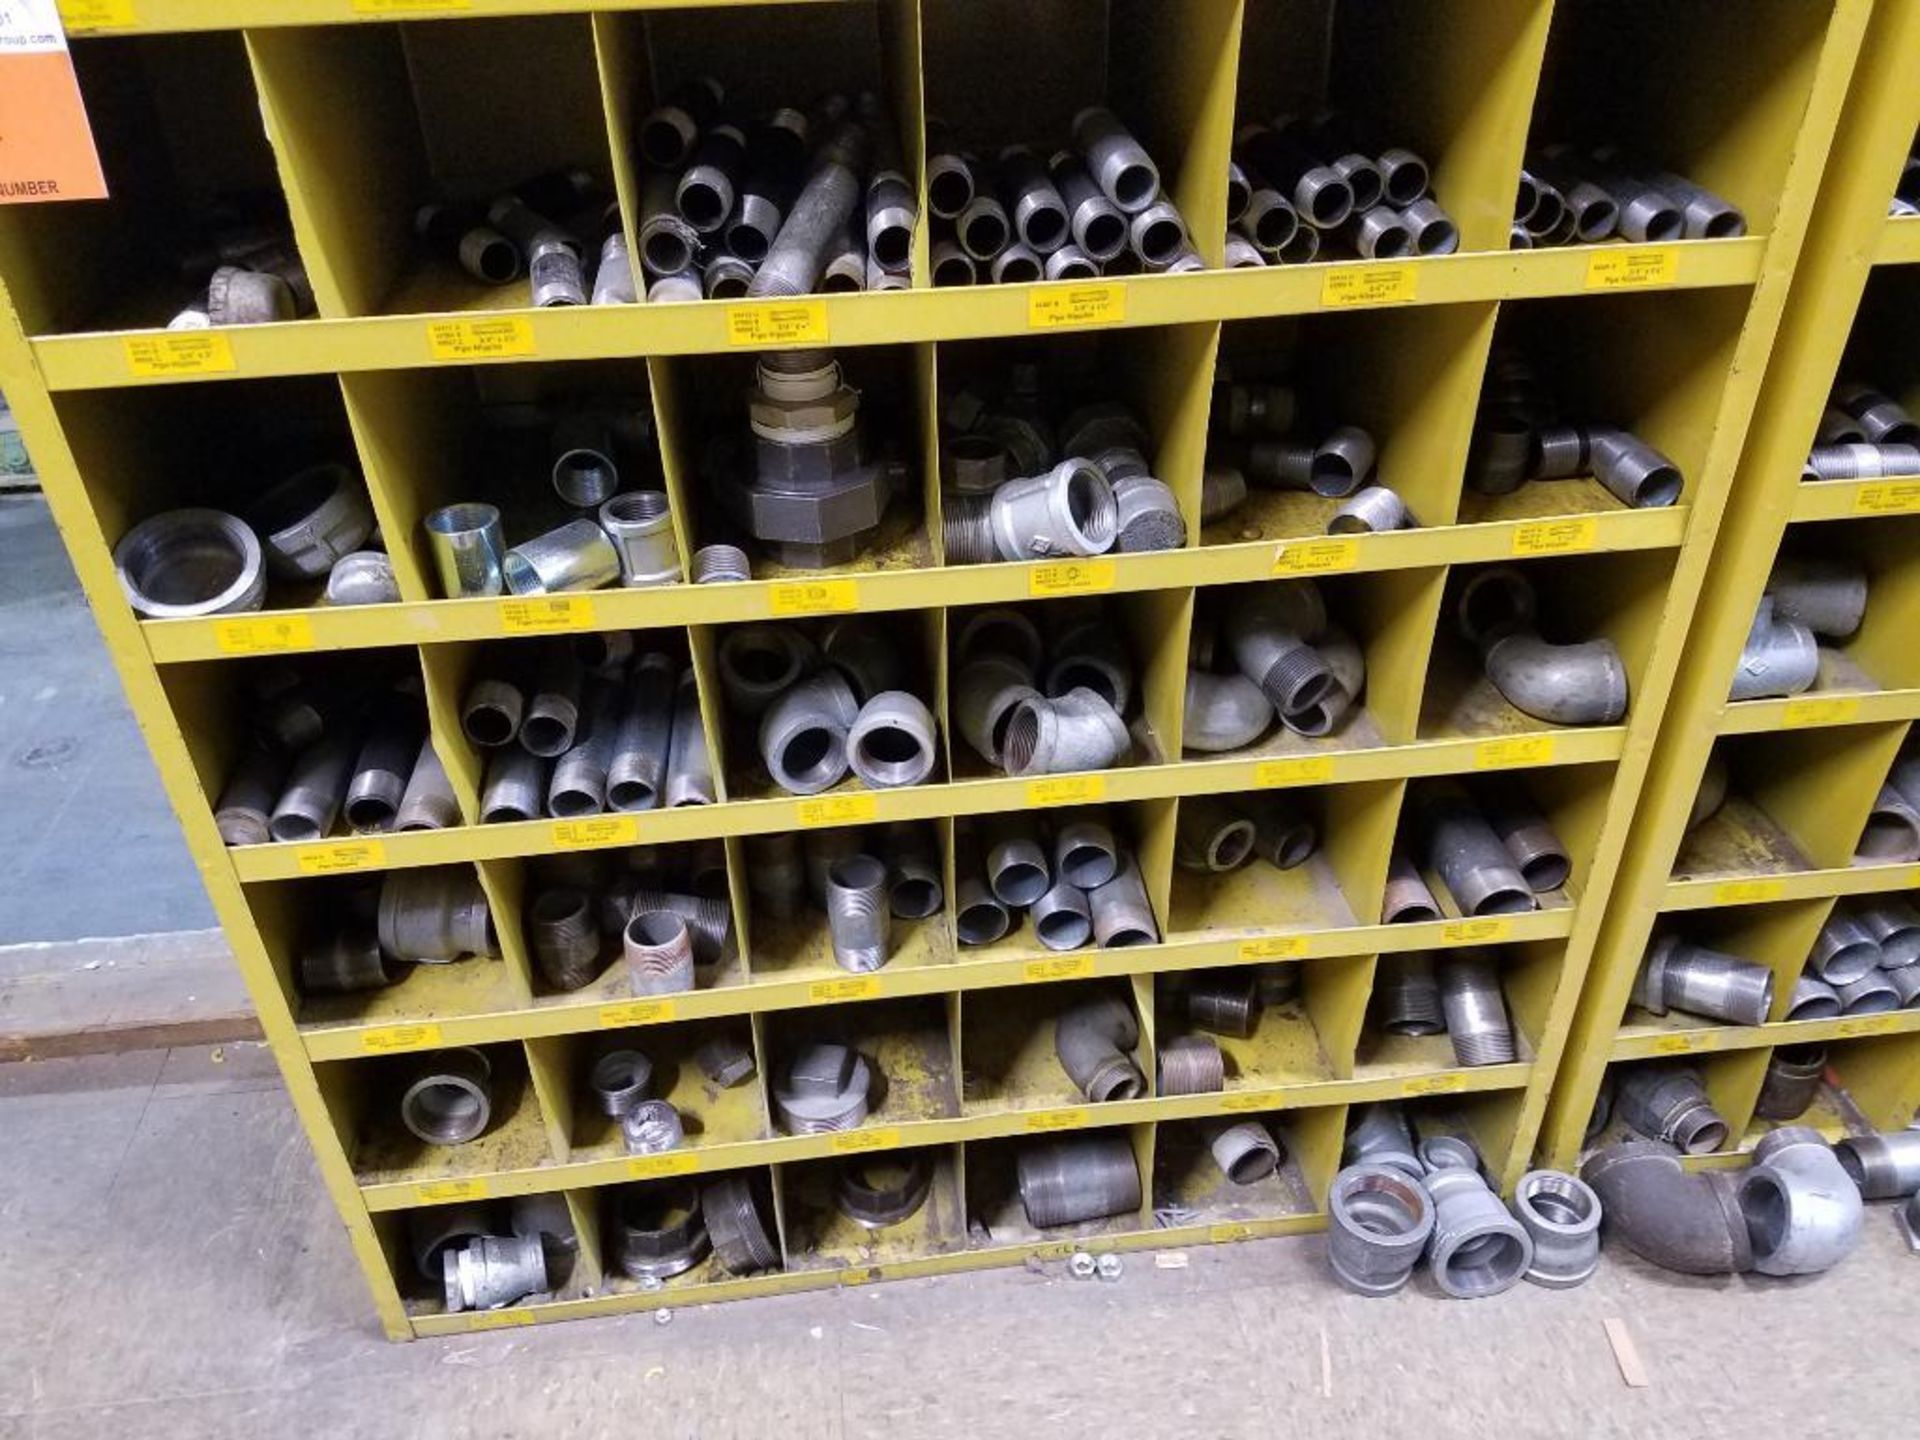 various nuts, bolts, screws, and pipes, storage units not included - Image 10 of 10